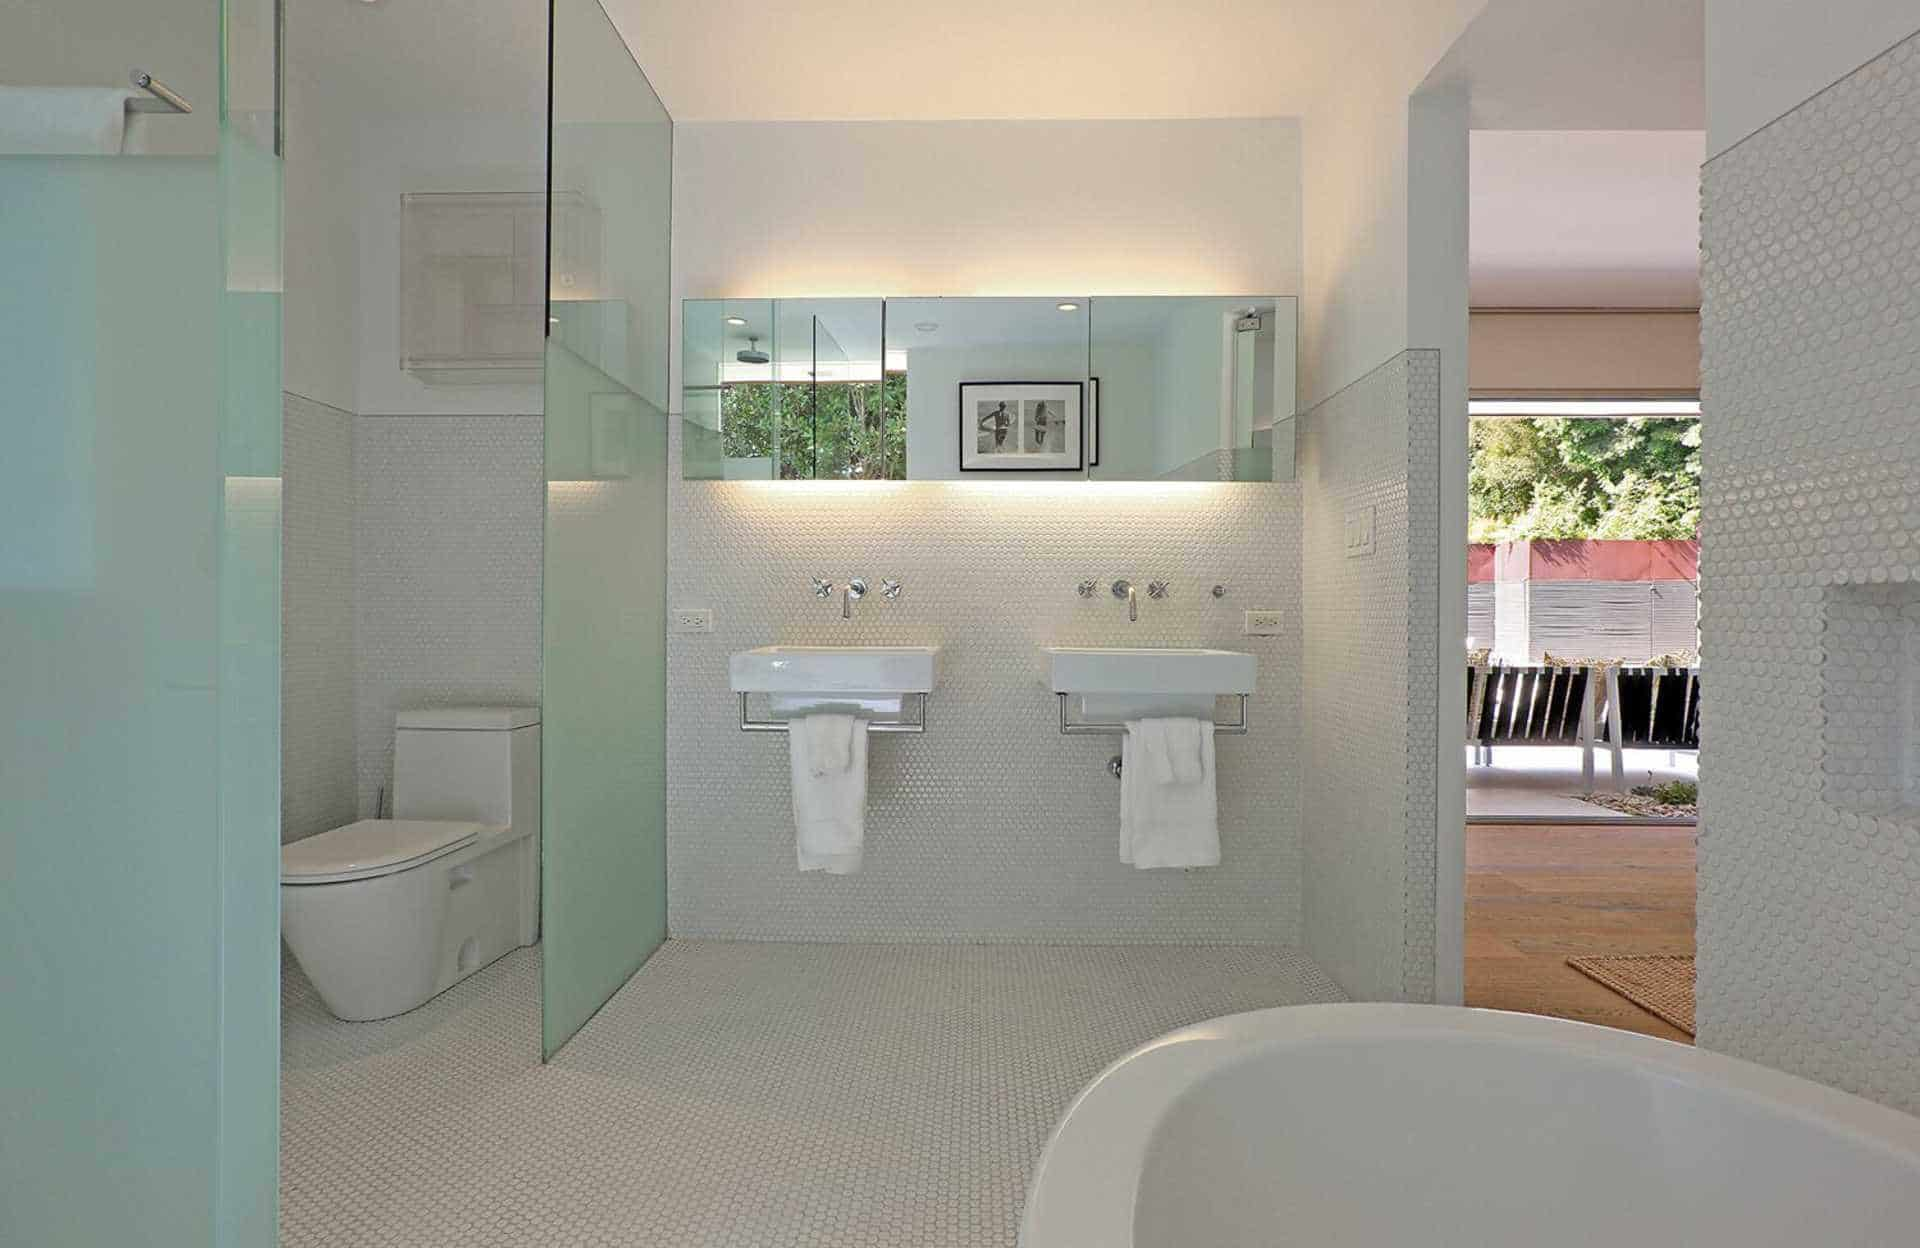 This primary bathroom in mid-century style features tiles flooring and walls, along with two floating sinks and a freestanding tub.